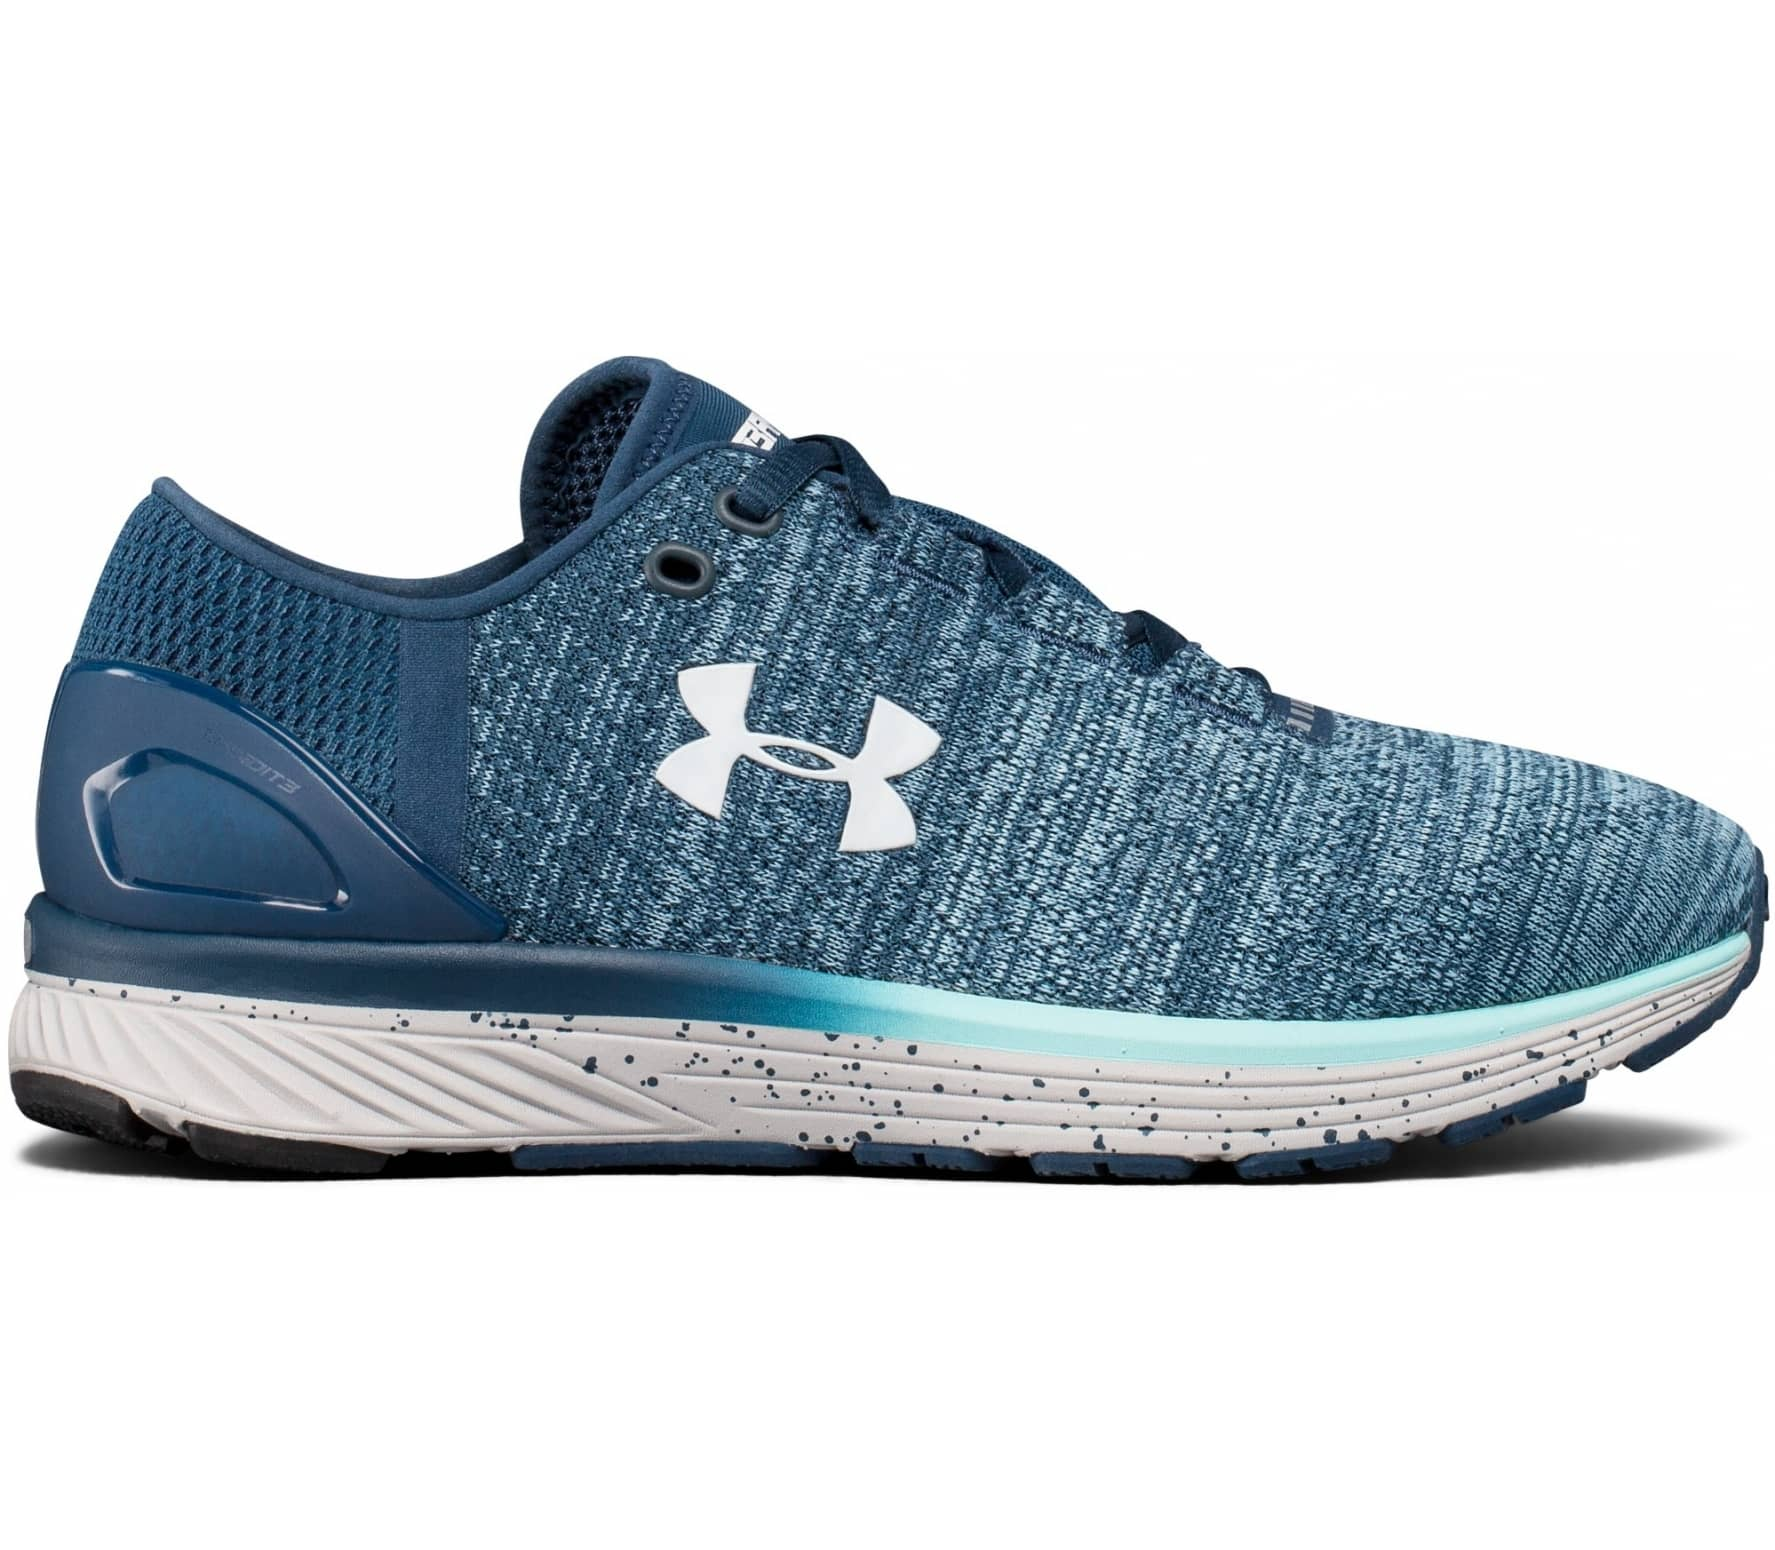 finest selection f36db b67fd Under Armour - Charged Bandit 3 women s running shoes (blue grey)